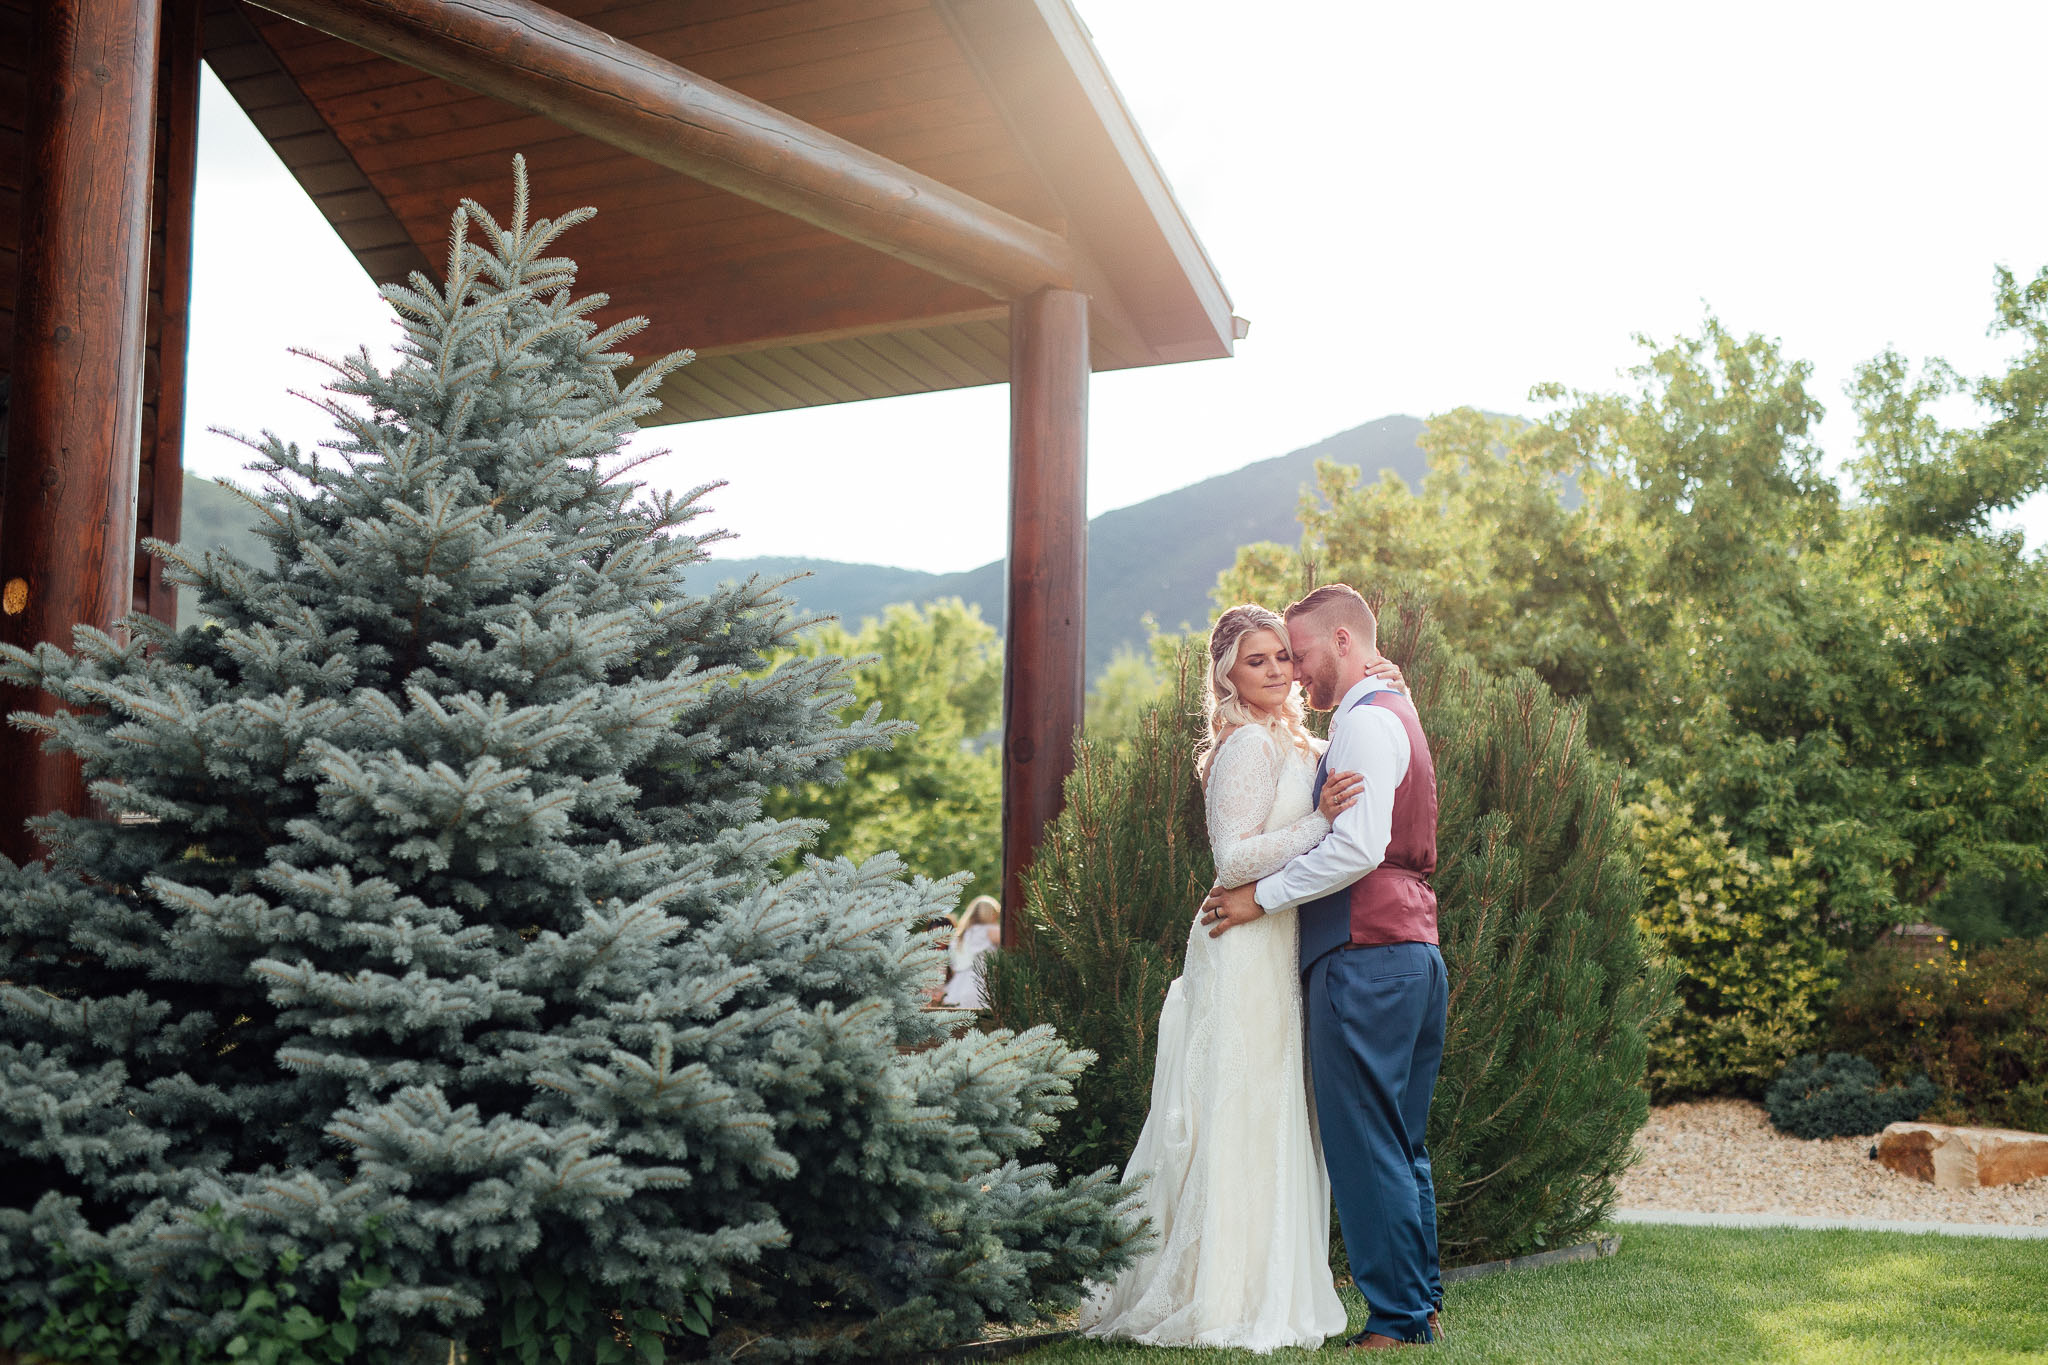 Bride and Groom pose for photos during wedding at cabin in Utah Mountains